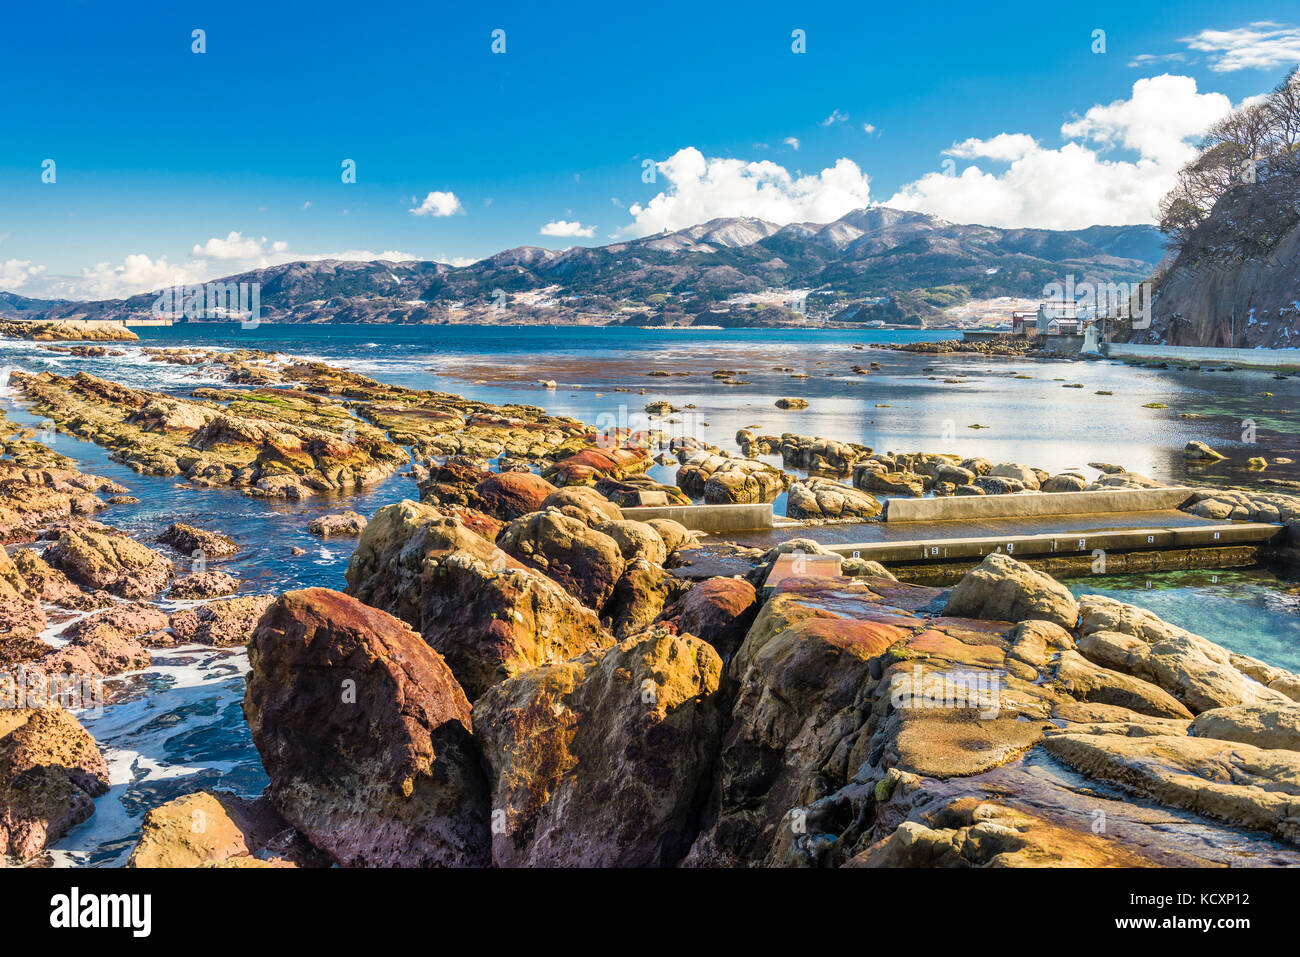 Wajima, Ishikawa, Japan rural coastal park. - Stock Image